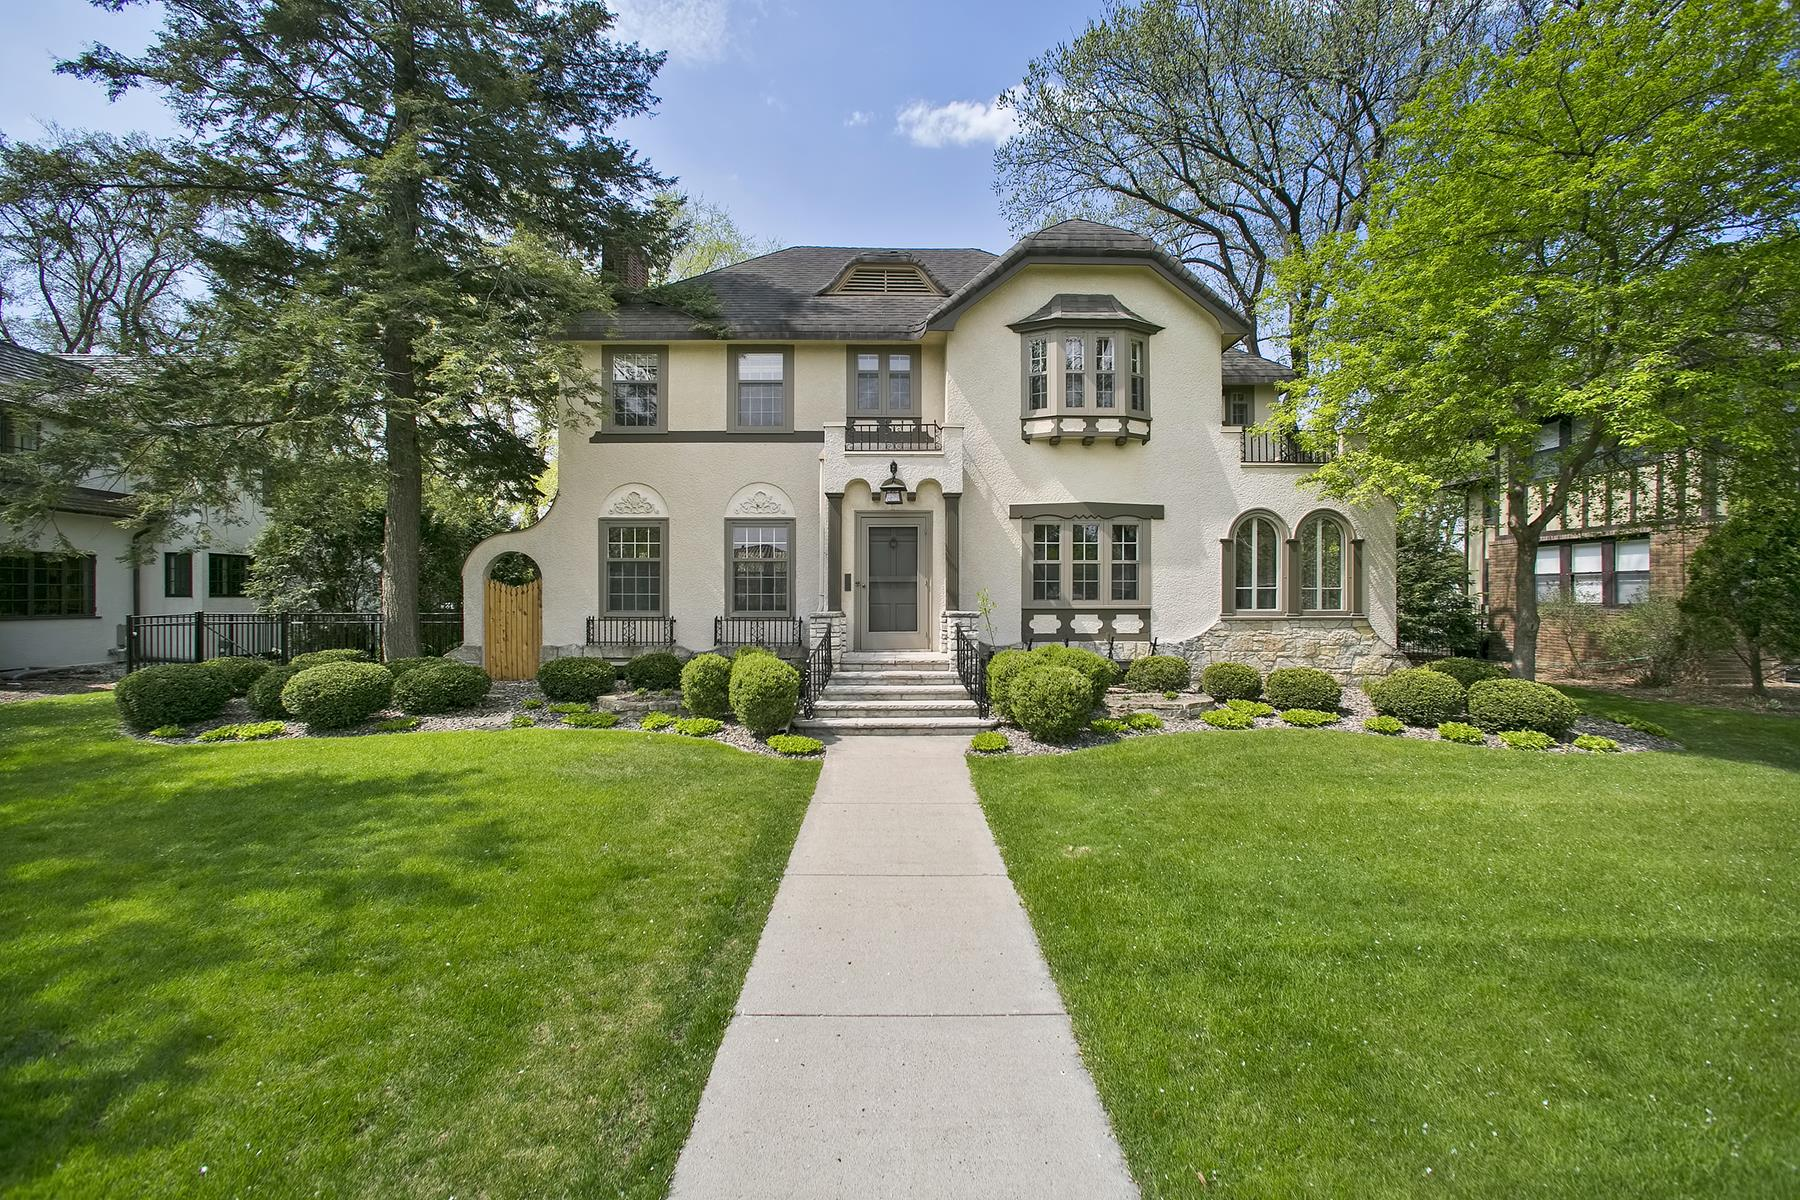 Single Family Home for Sale at 4628 Browndale Avenue Edina, Minnesota, 55424 United States